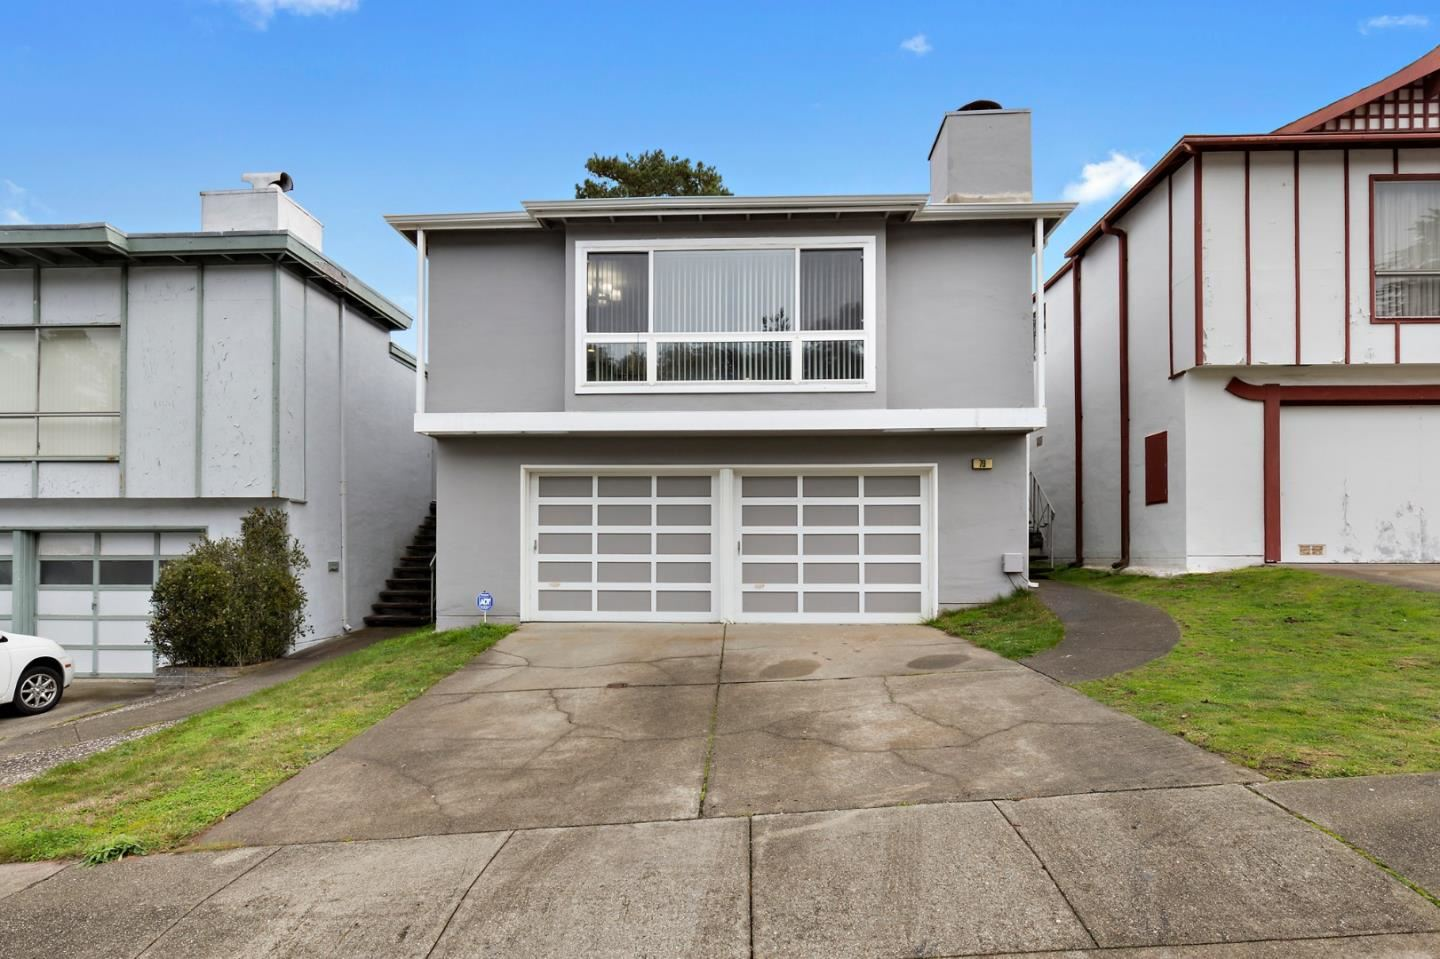 Photo for 79 Canterbury AVE, DALY CITY, CA 94015 (MLS # ML81778540)